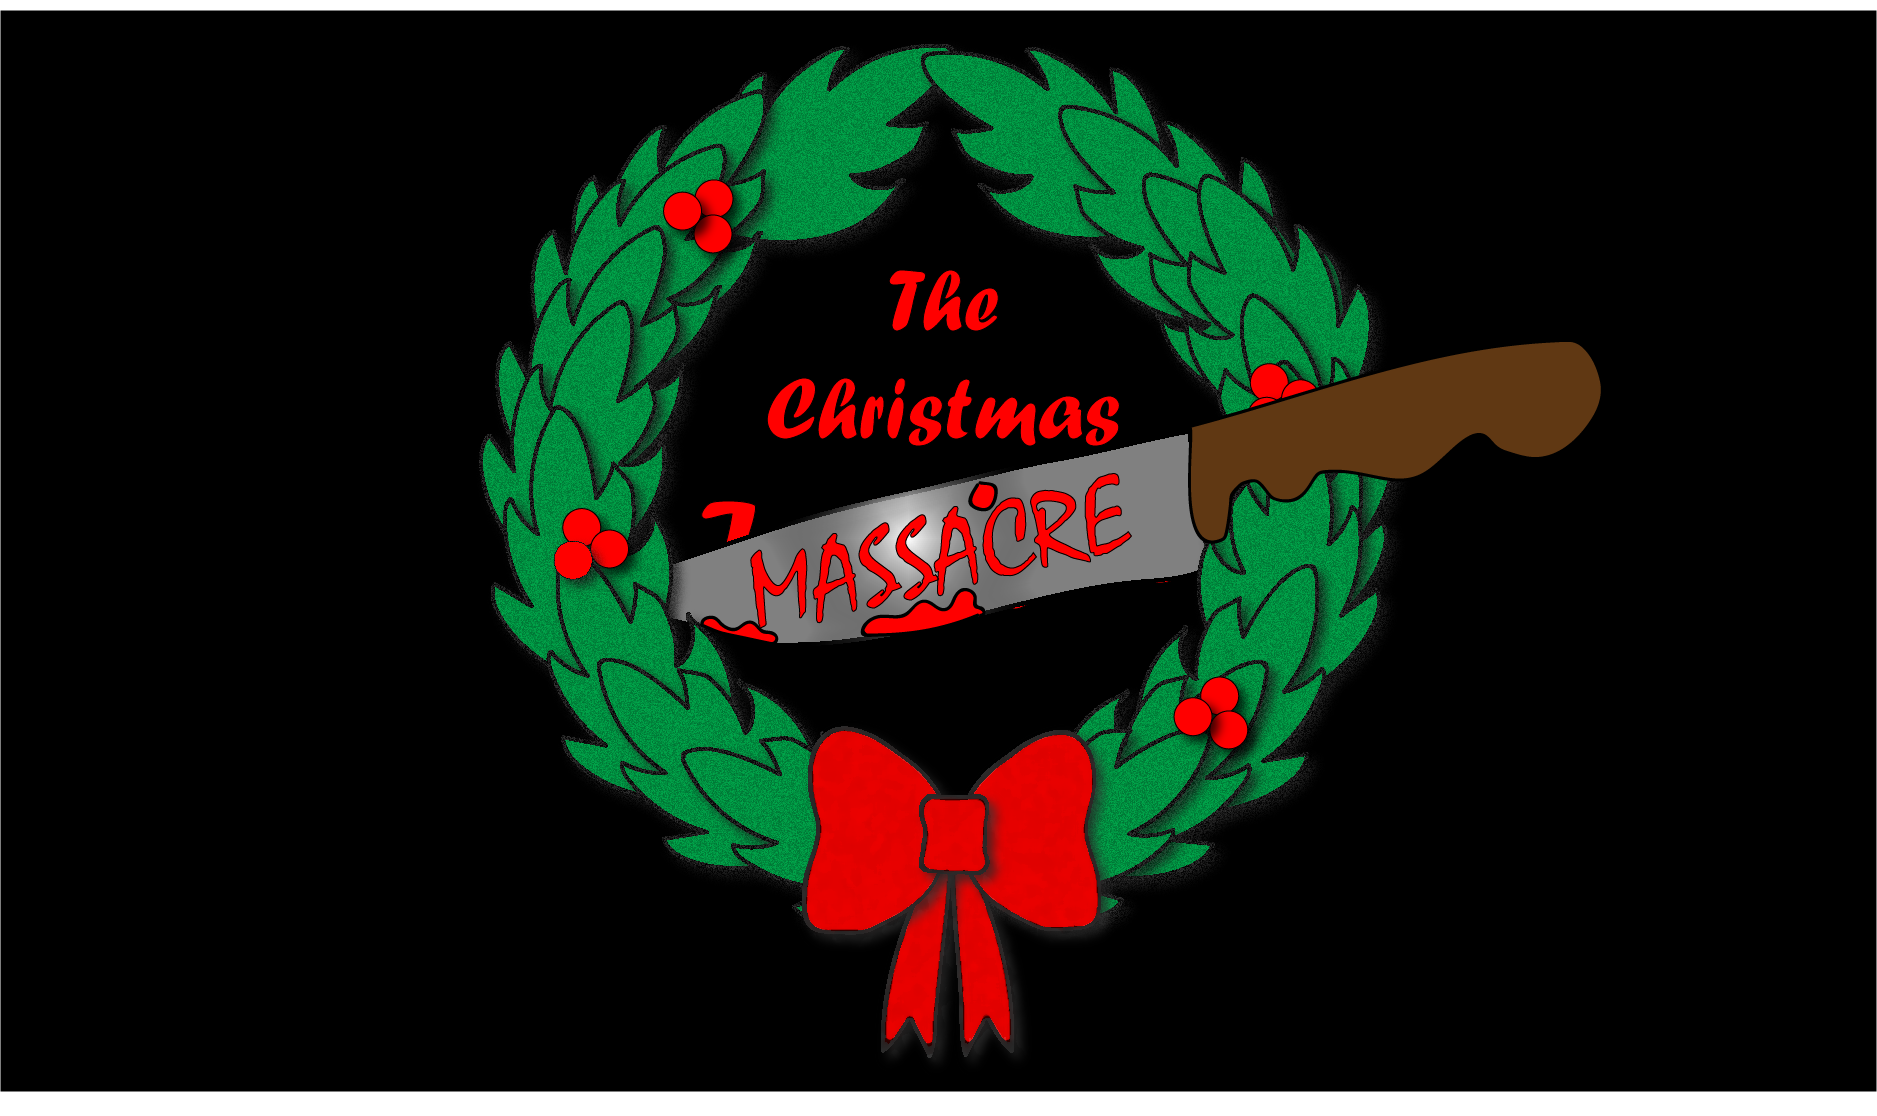 The Christmas Massacre Live